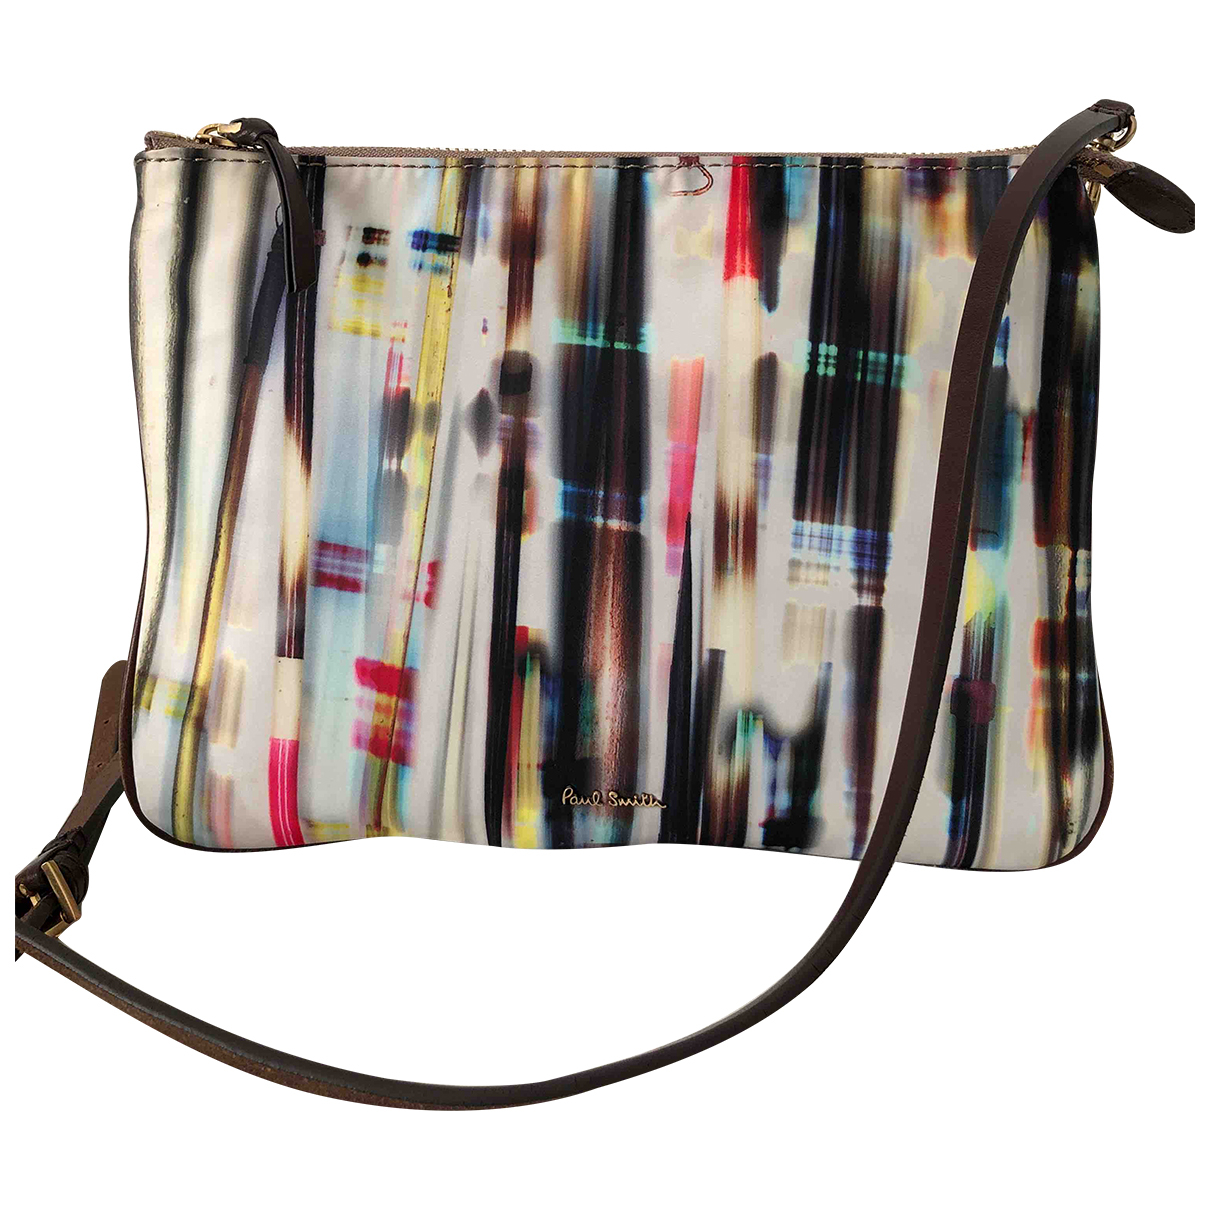 Paul Smith \N Multicolour handbag for Women \N